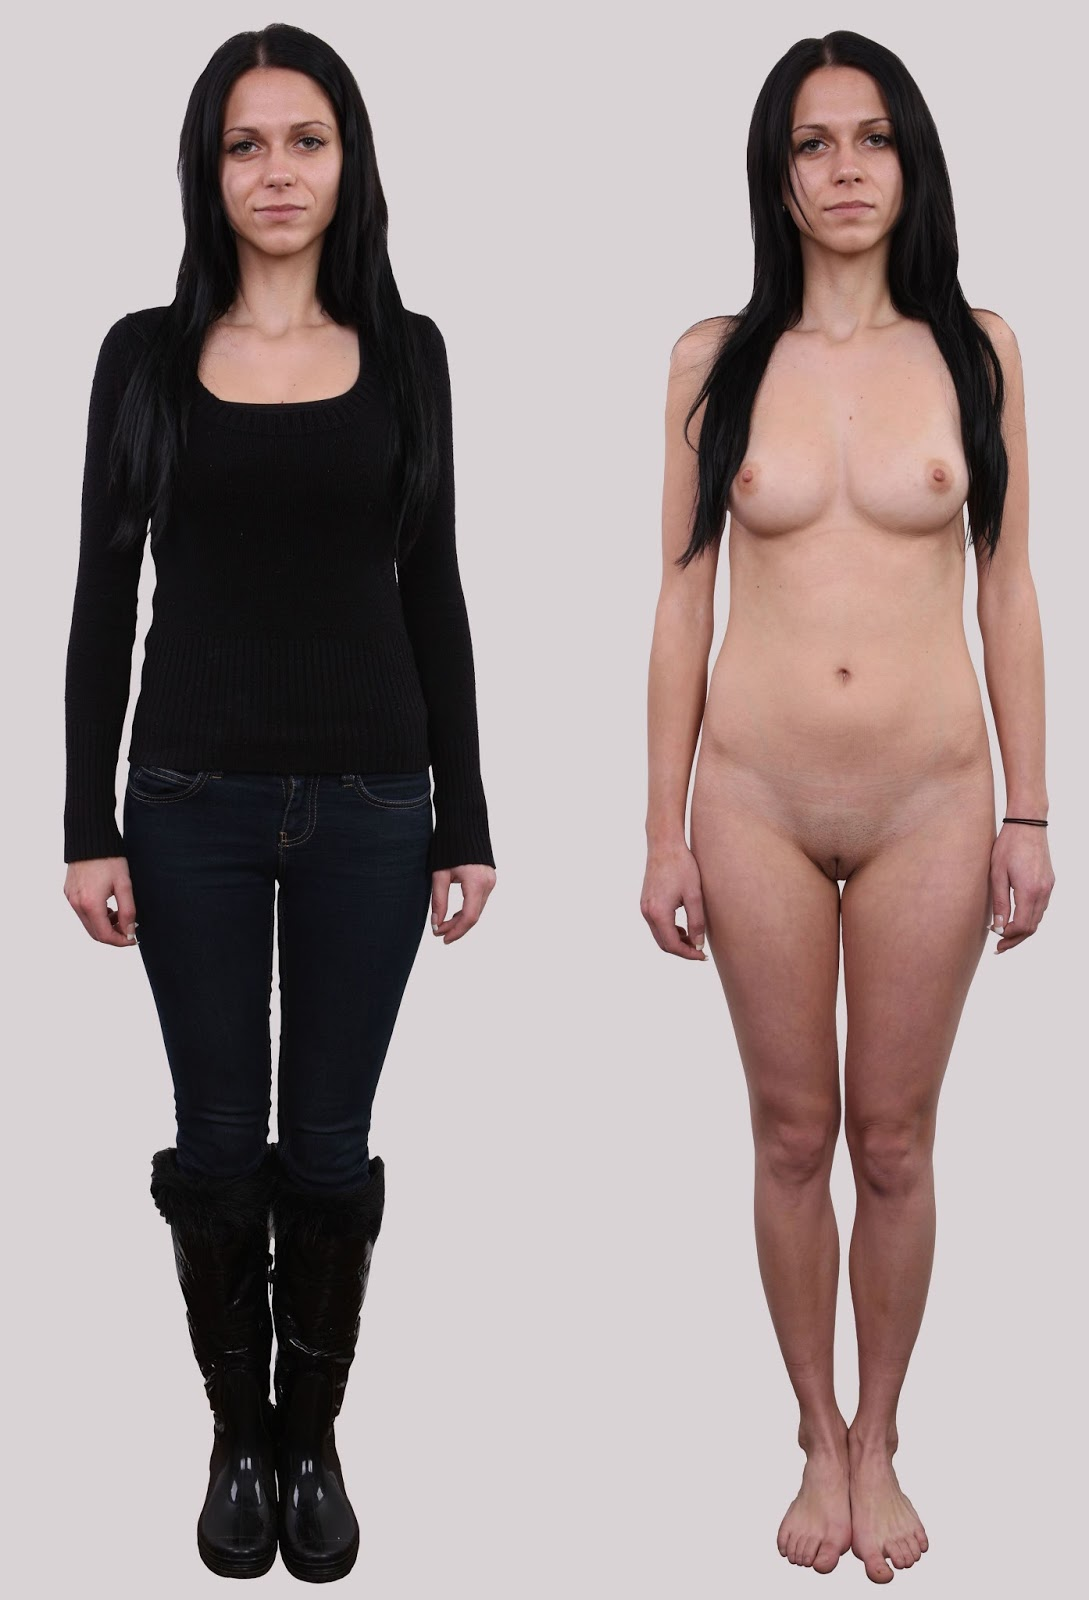 Model Audition - Posing Side By Side Cloth Unclothed -9205